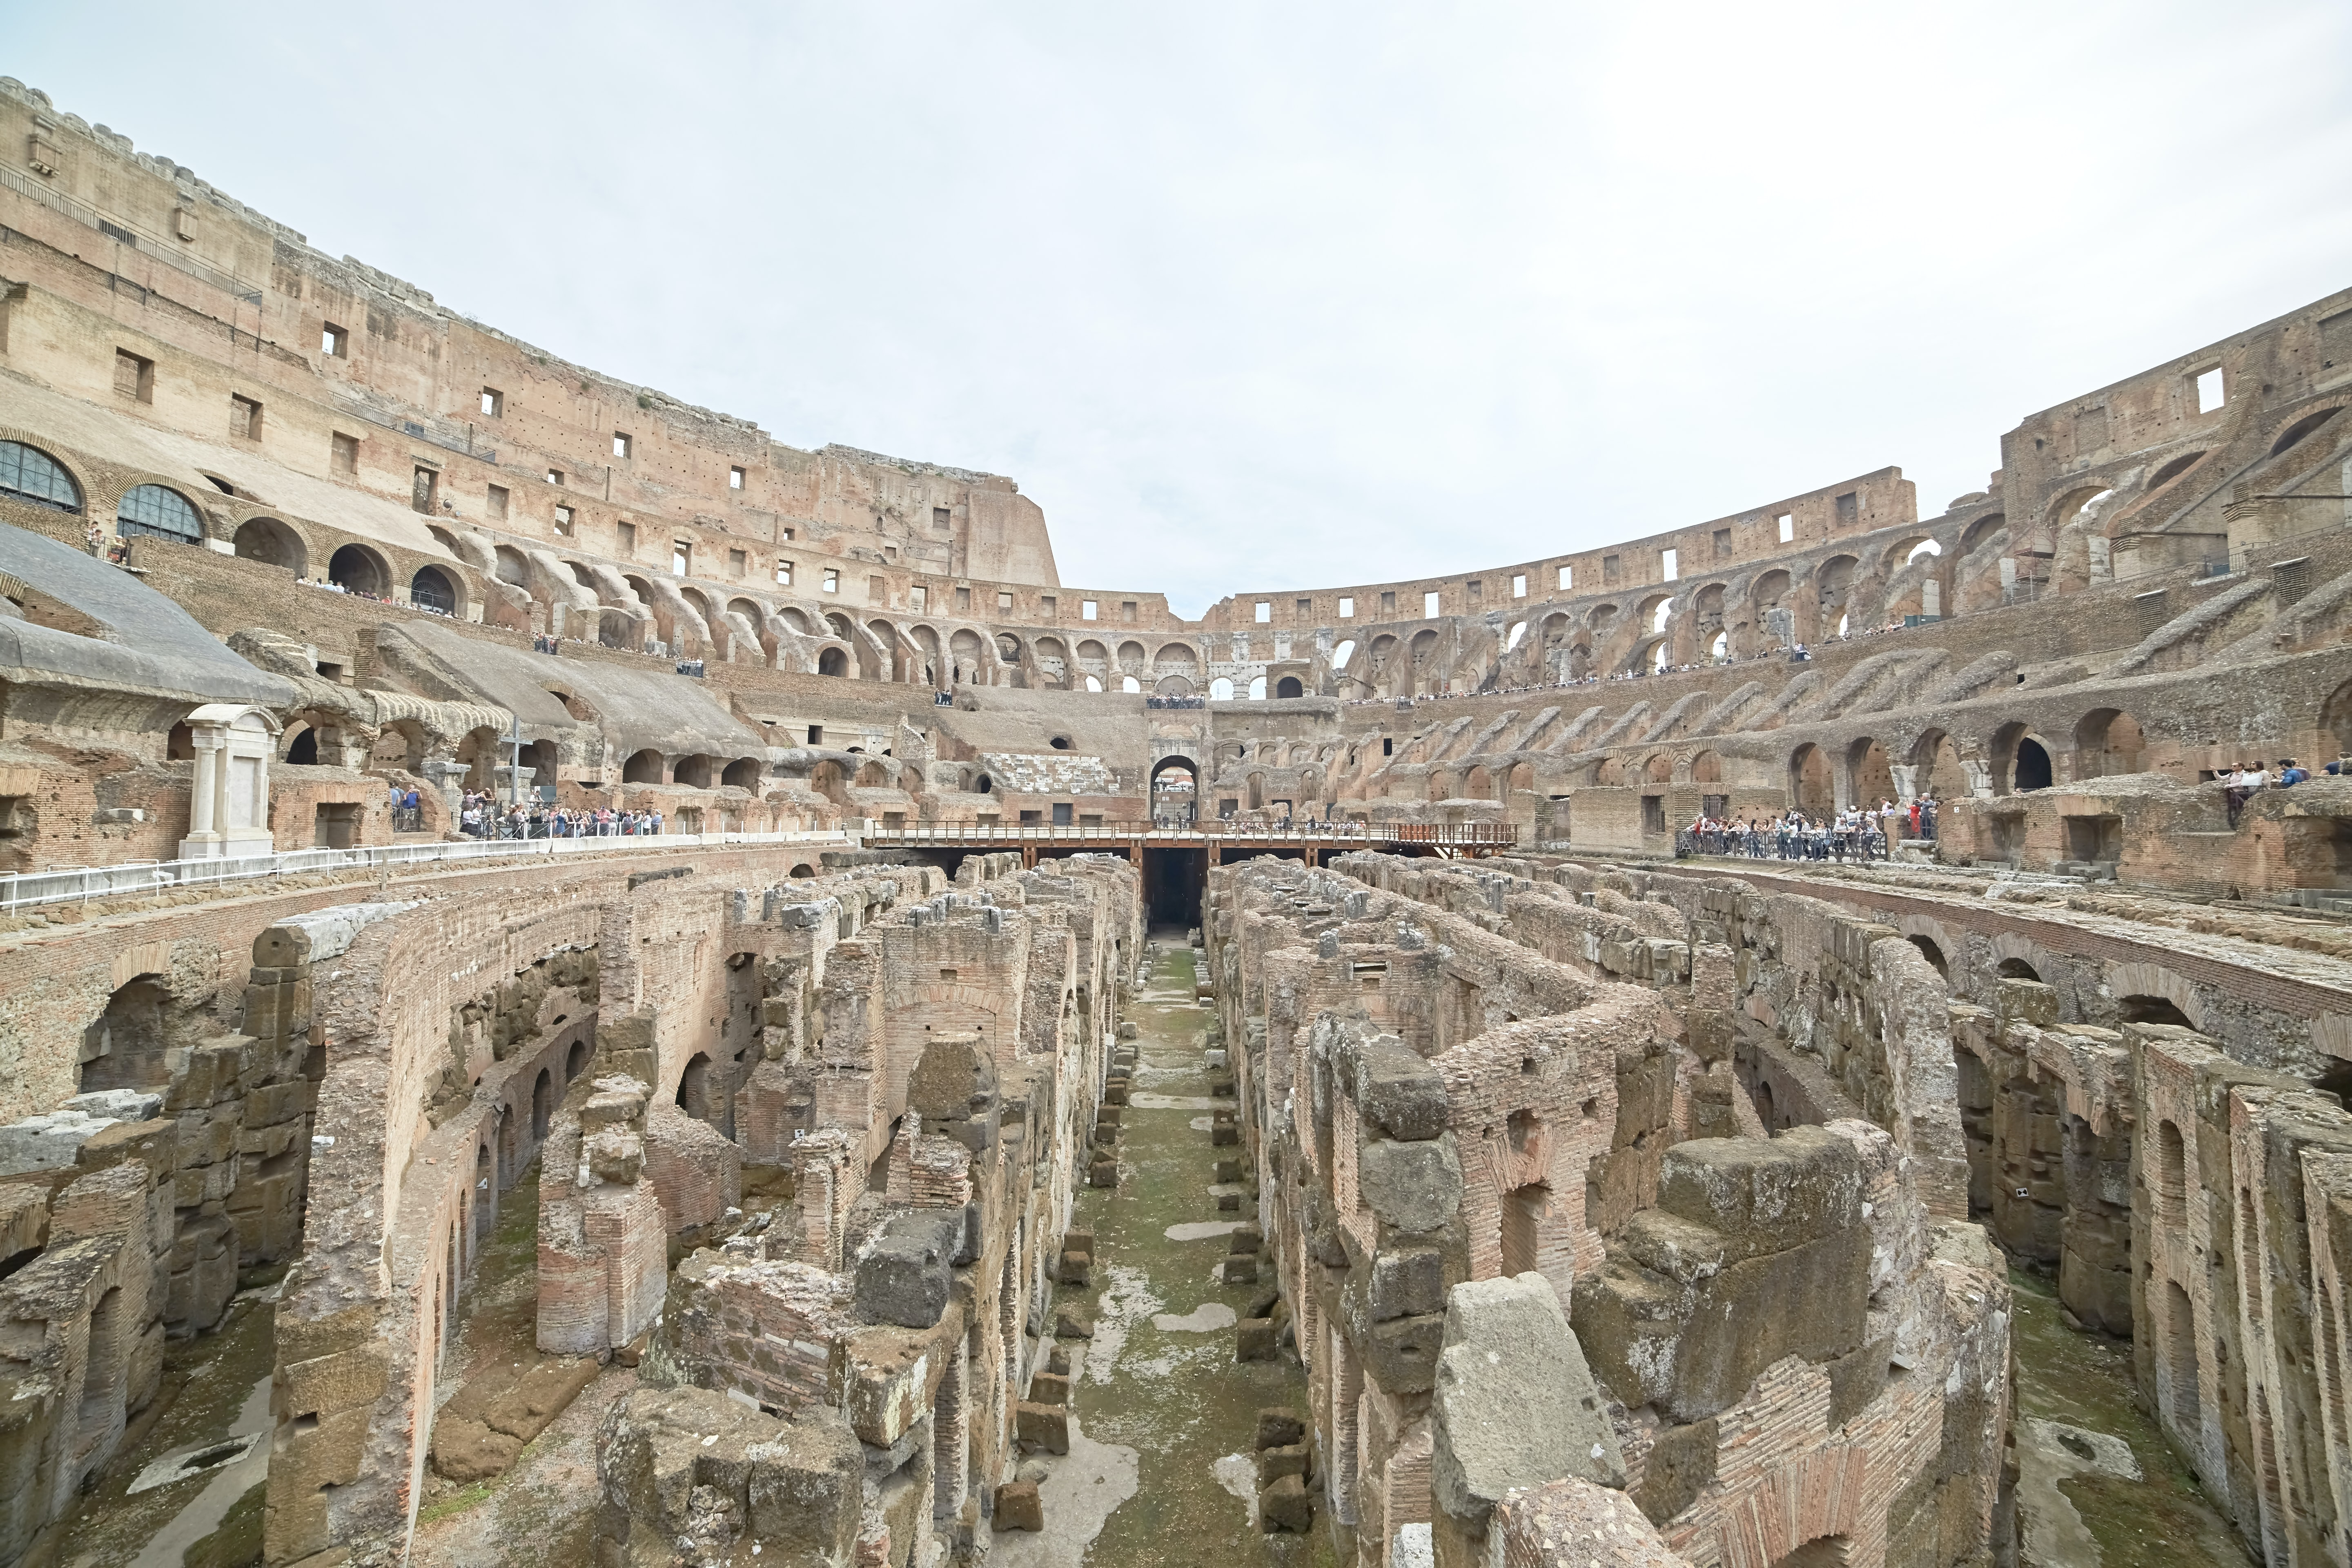 Colosseum, Rome during daytime